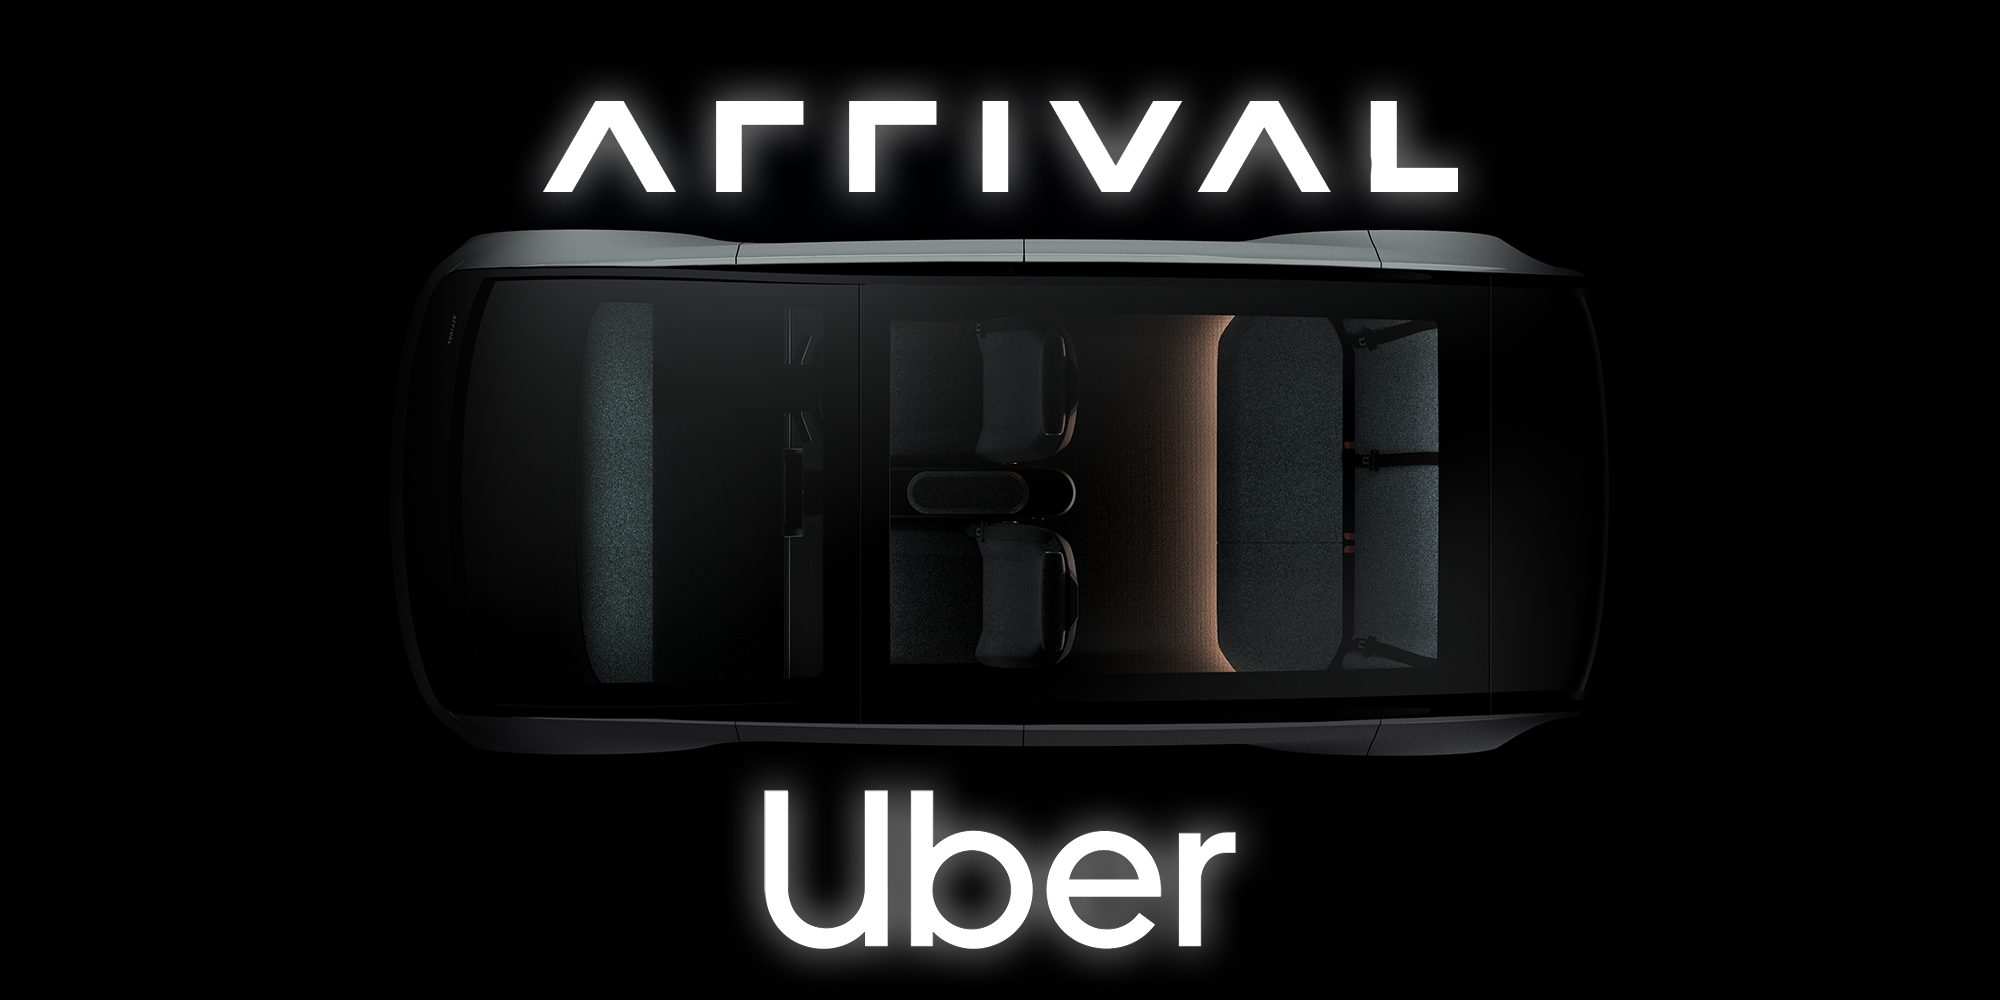 Arrival-Car-Uber-Electric-Vehicle